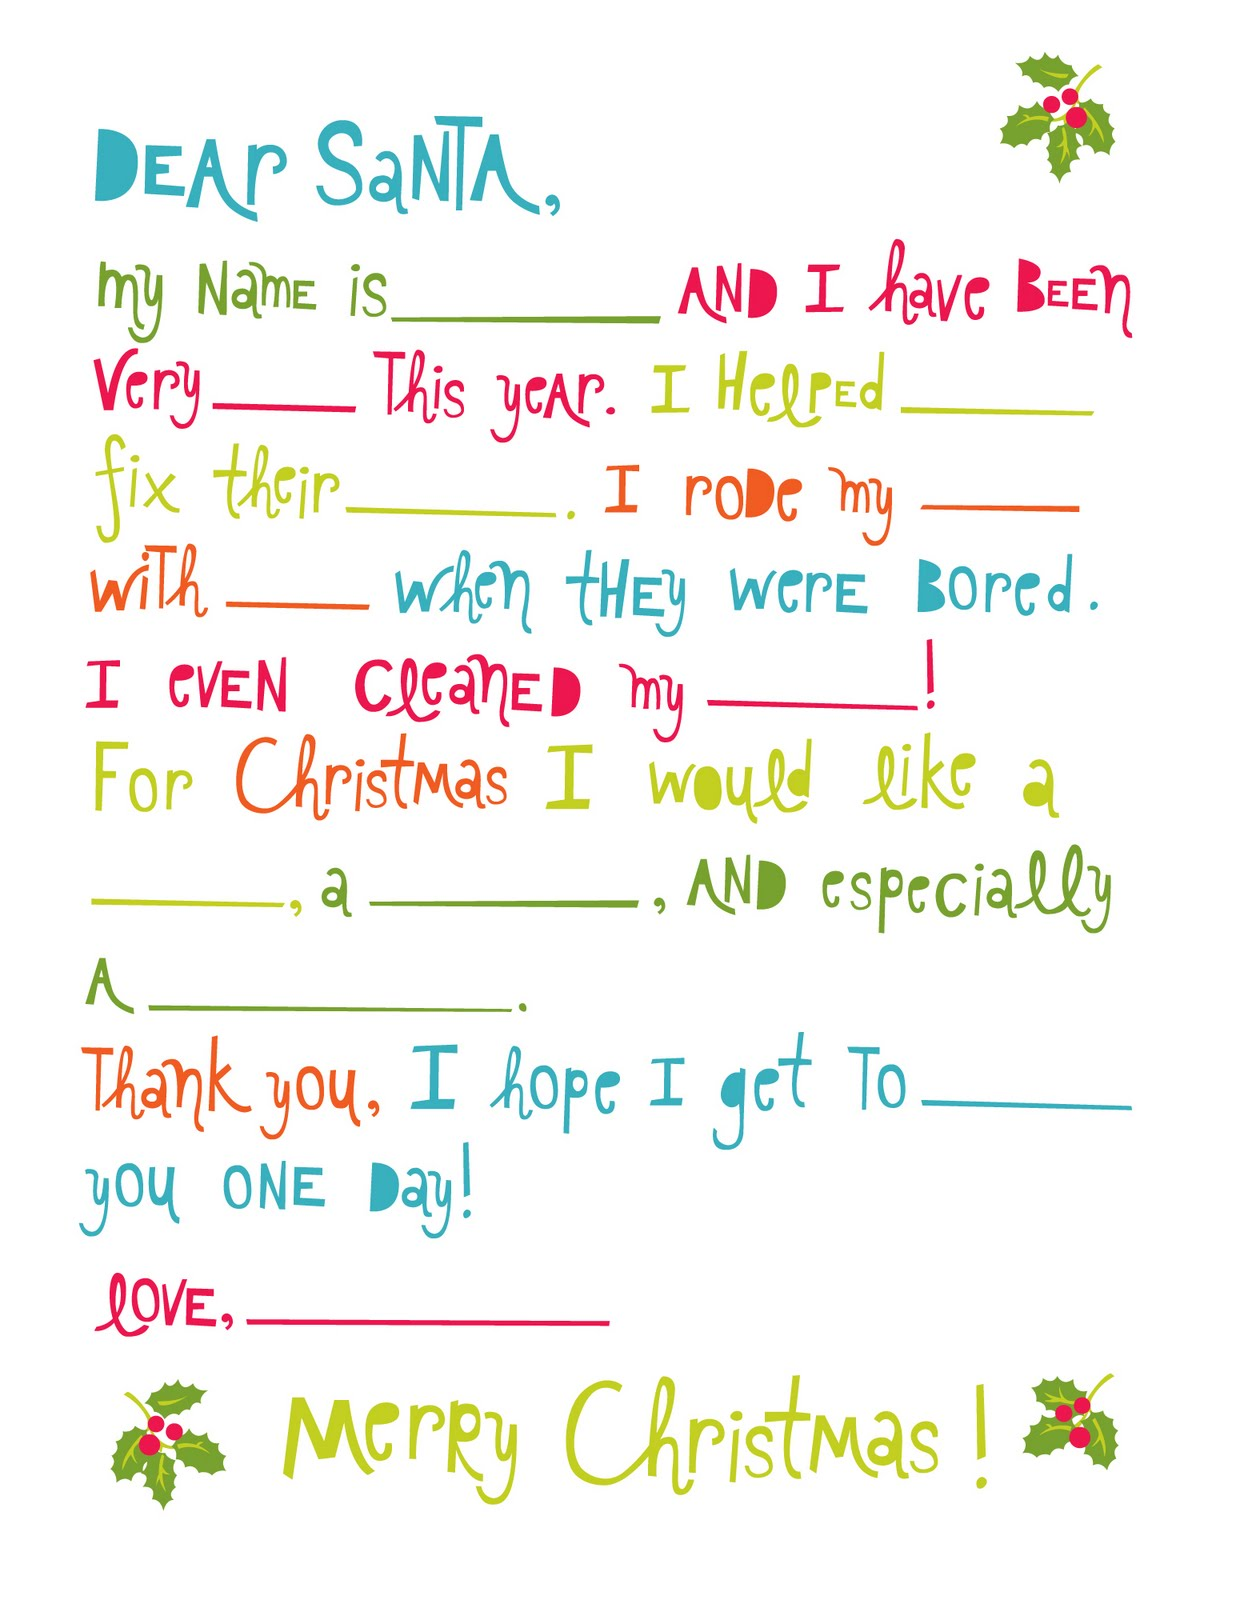 Lemon Squeezy Day Six Santa Letter